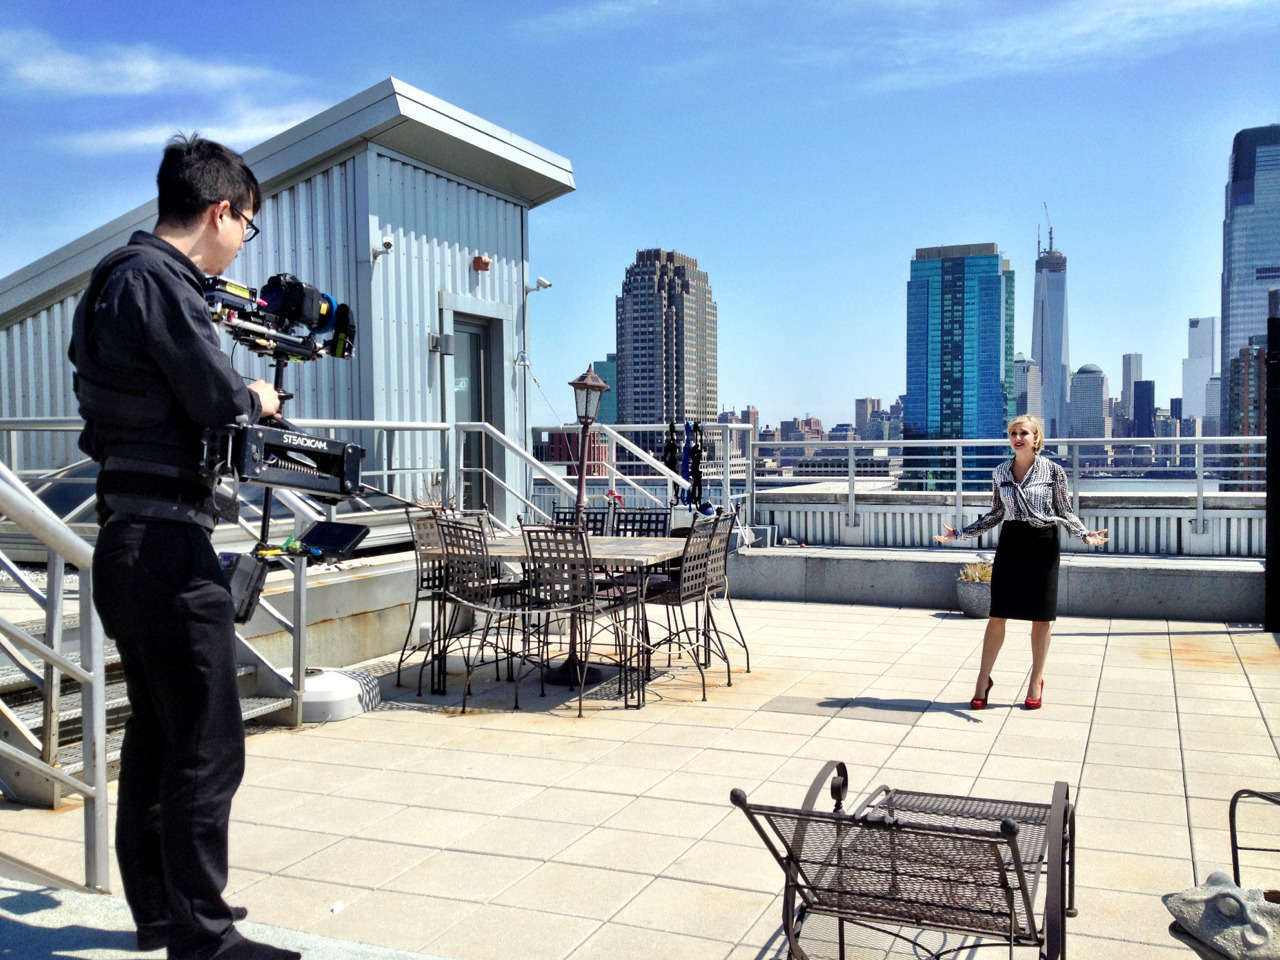 The view from a $2 million  penthouse in Jersey City that we shot a real estate promotion video for today